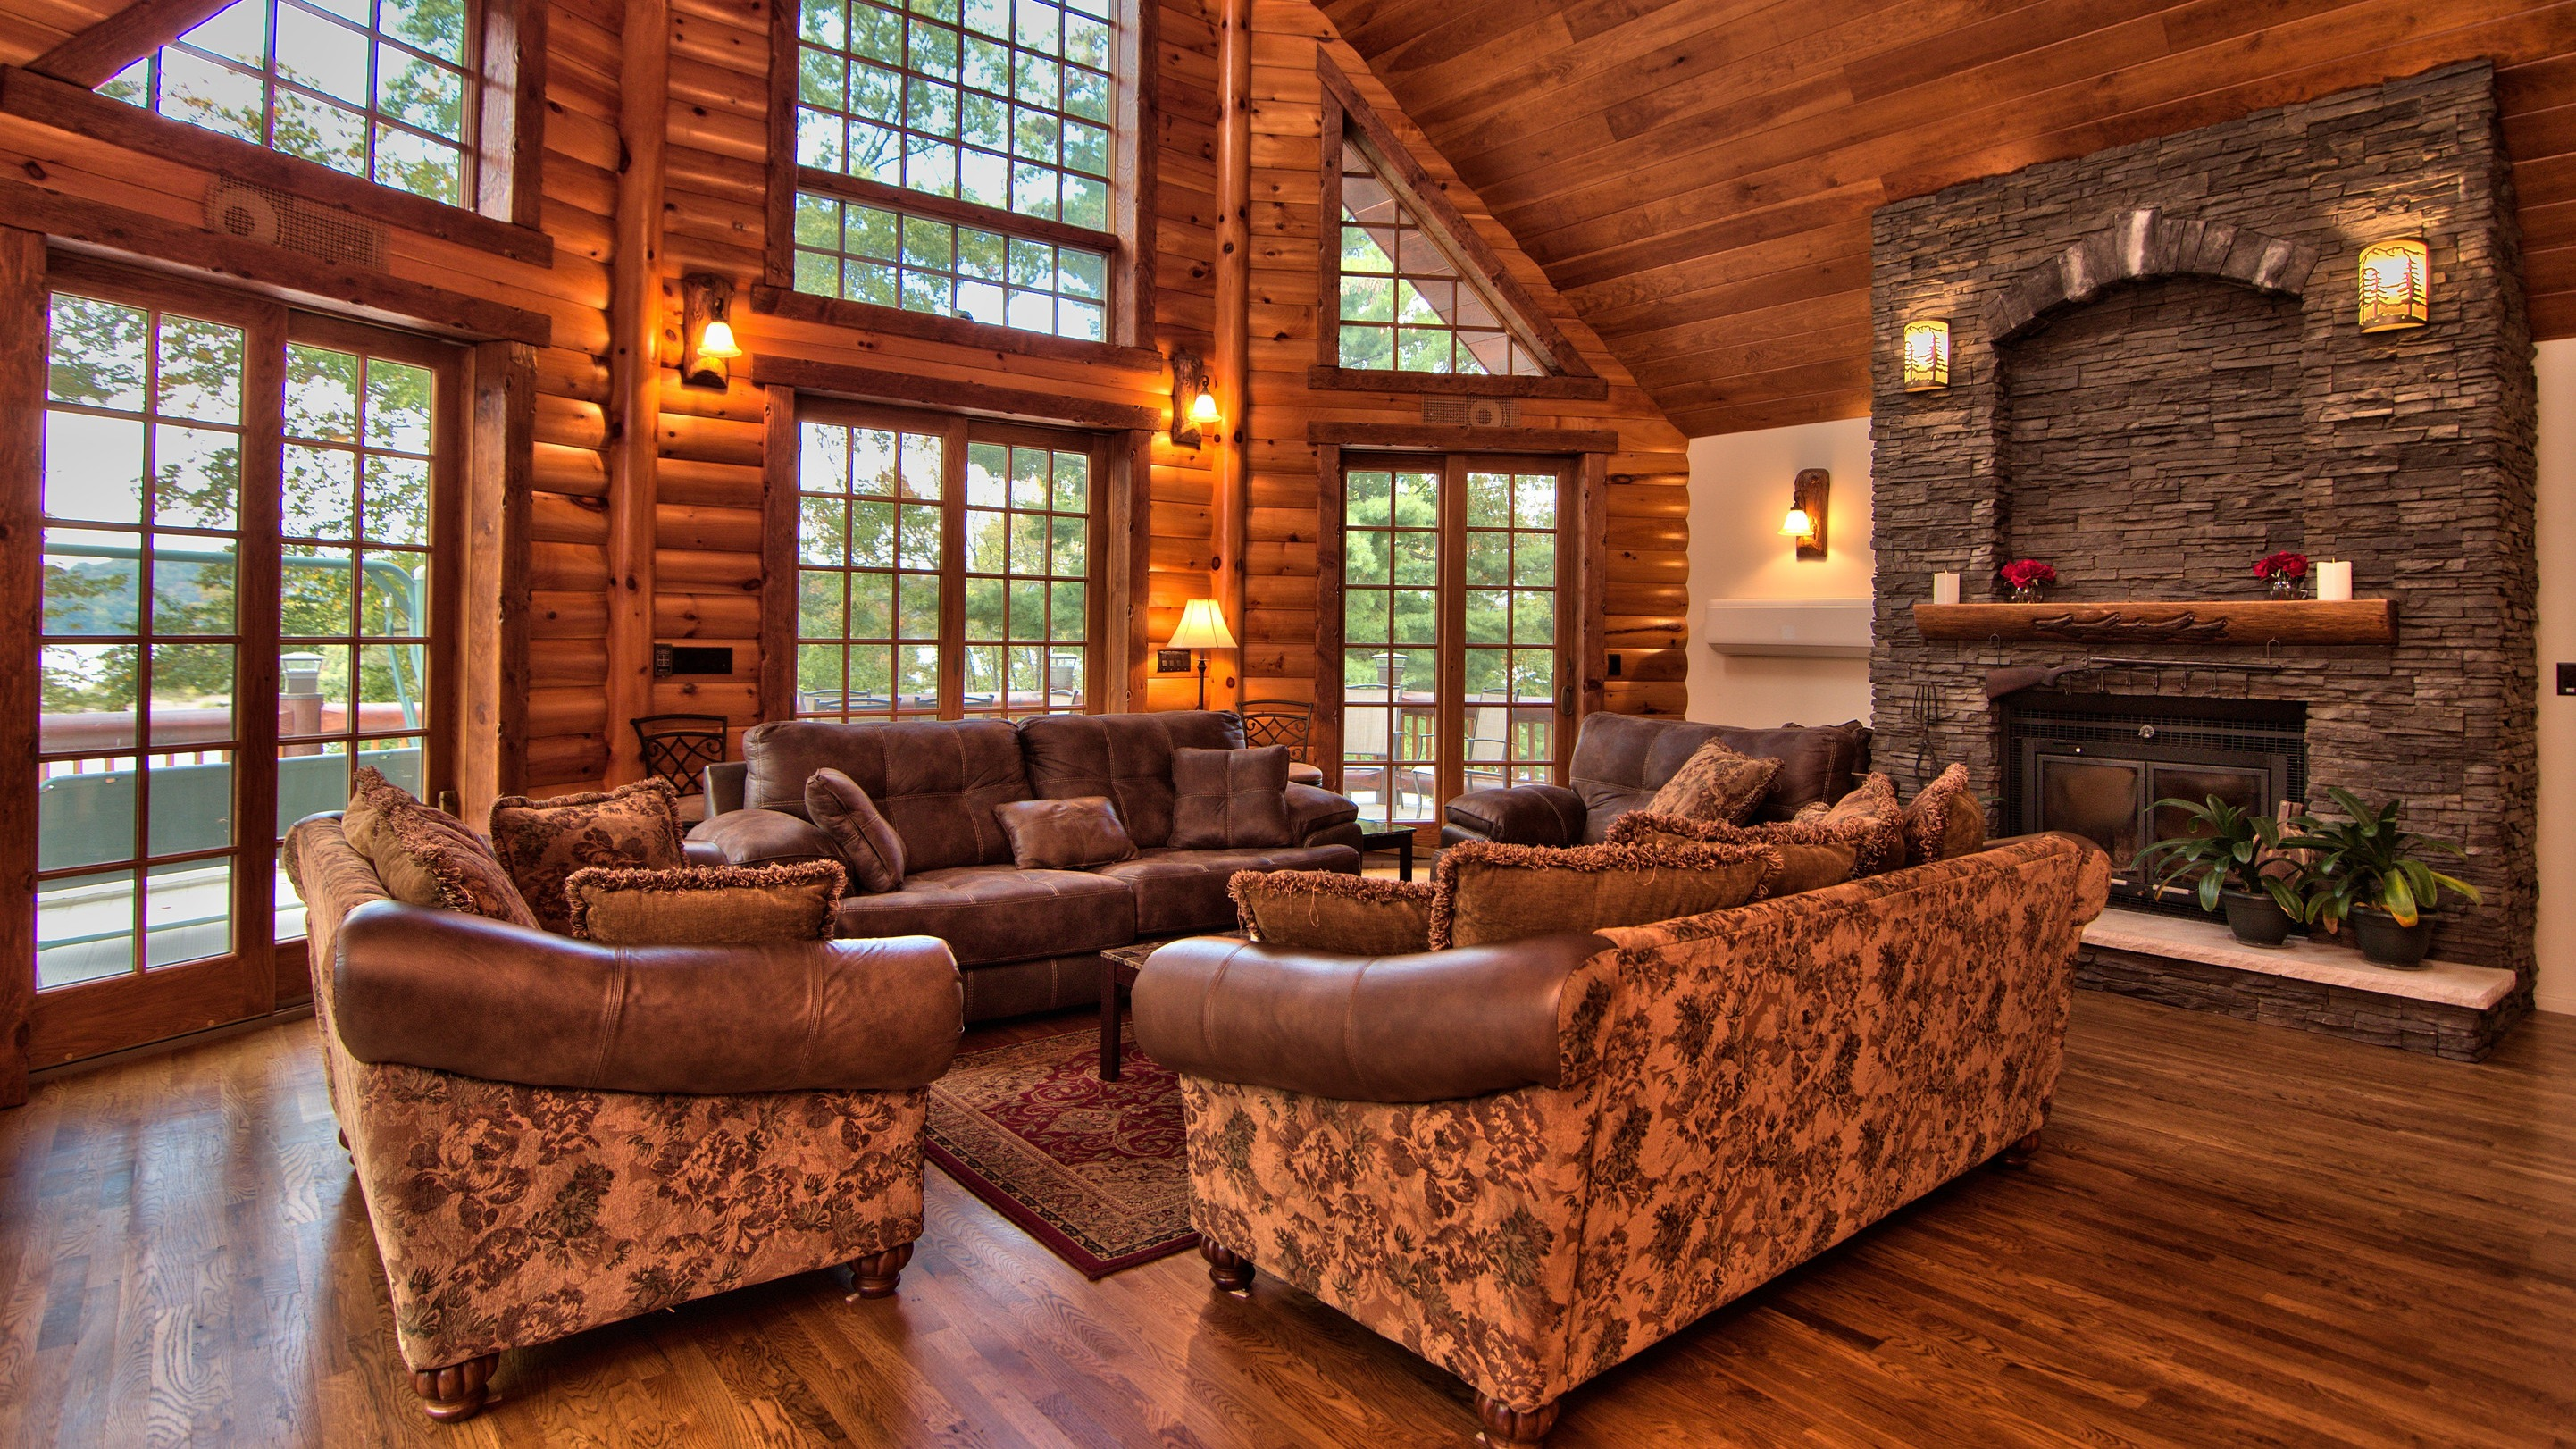 Top spots for the best lake cabin rentals in the USA   Vrbo